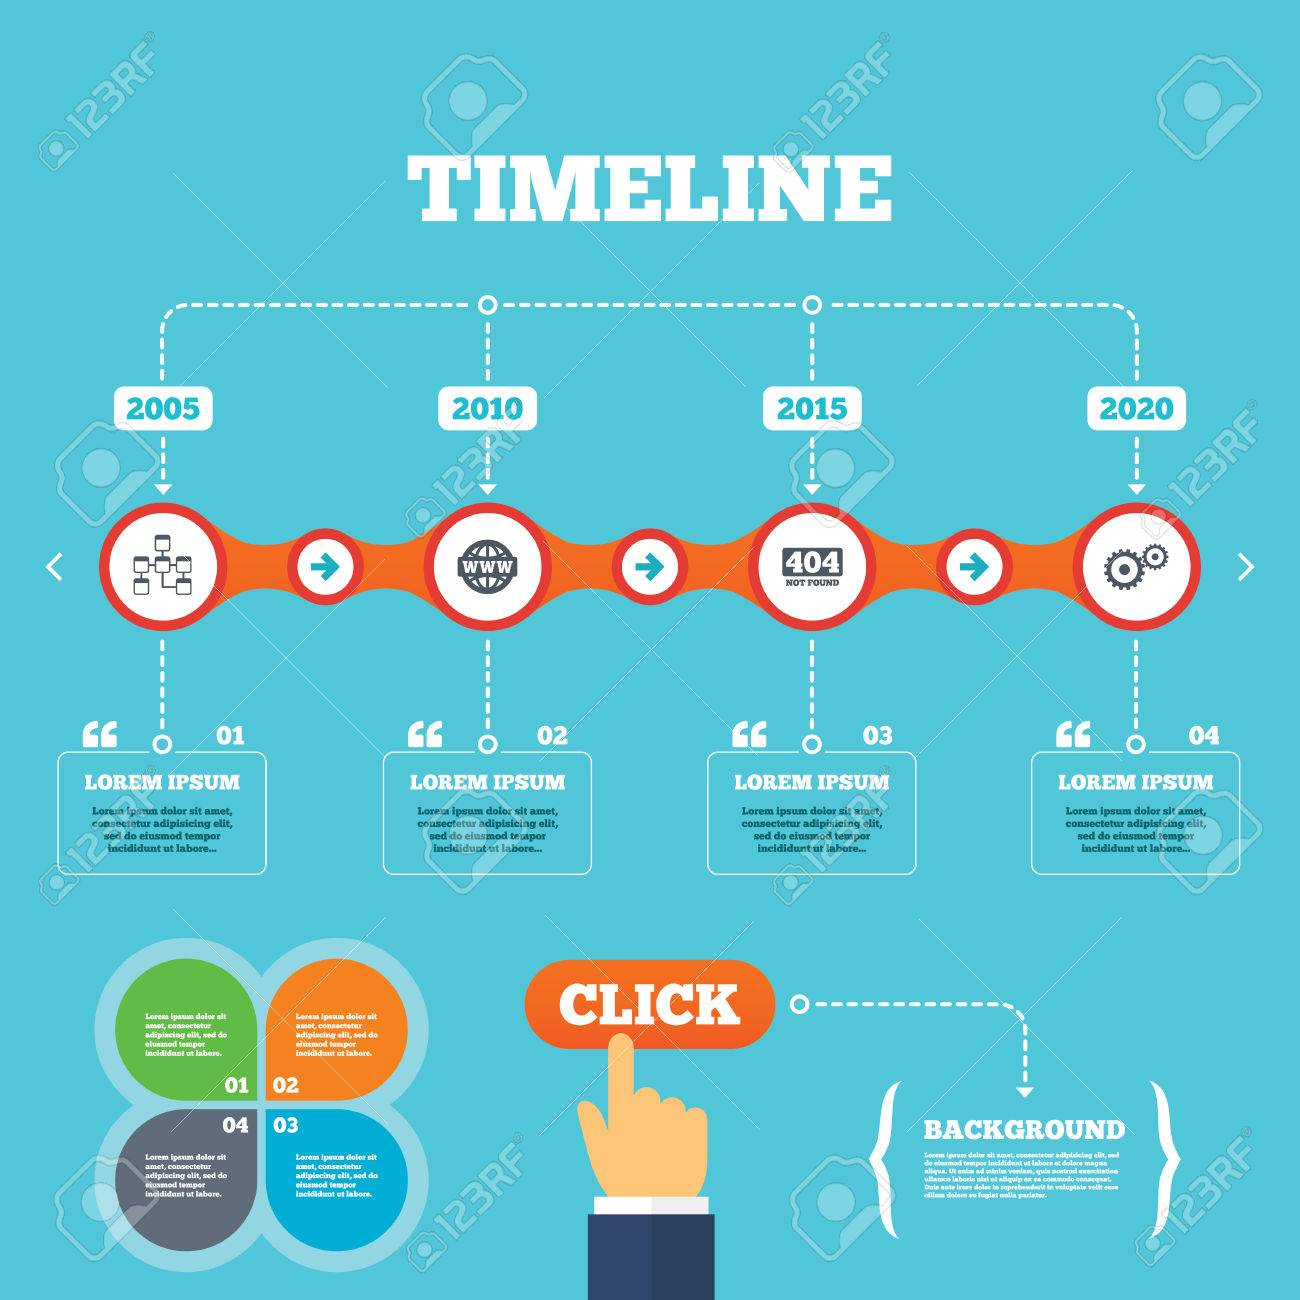 Internet Quotes Timeline With Arrows And Quoteswebsite Database Iconinternet